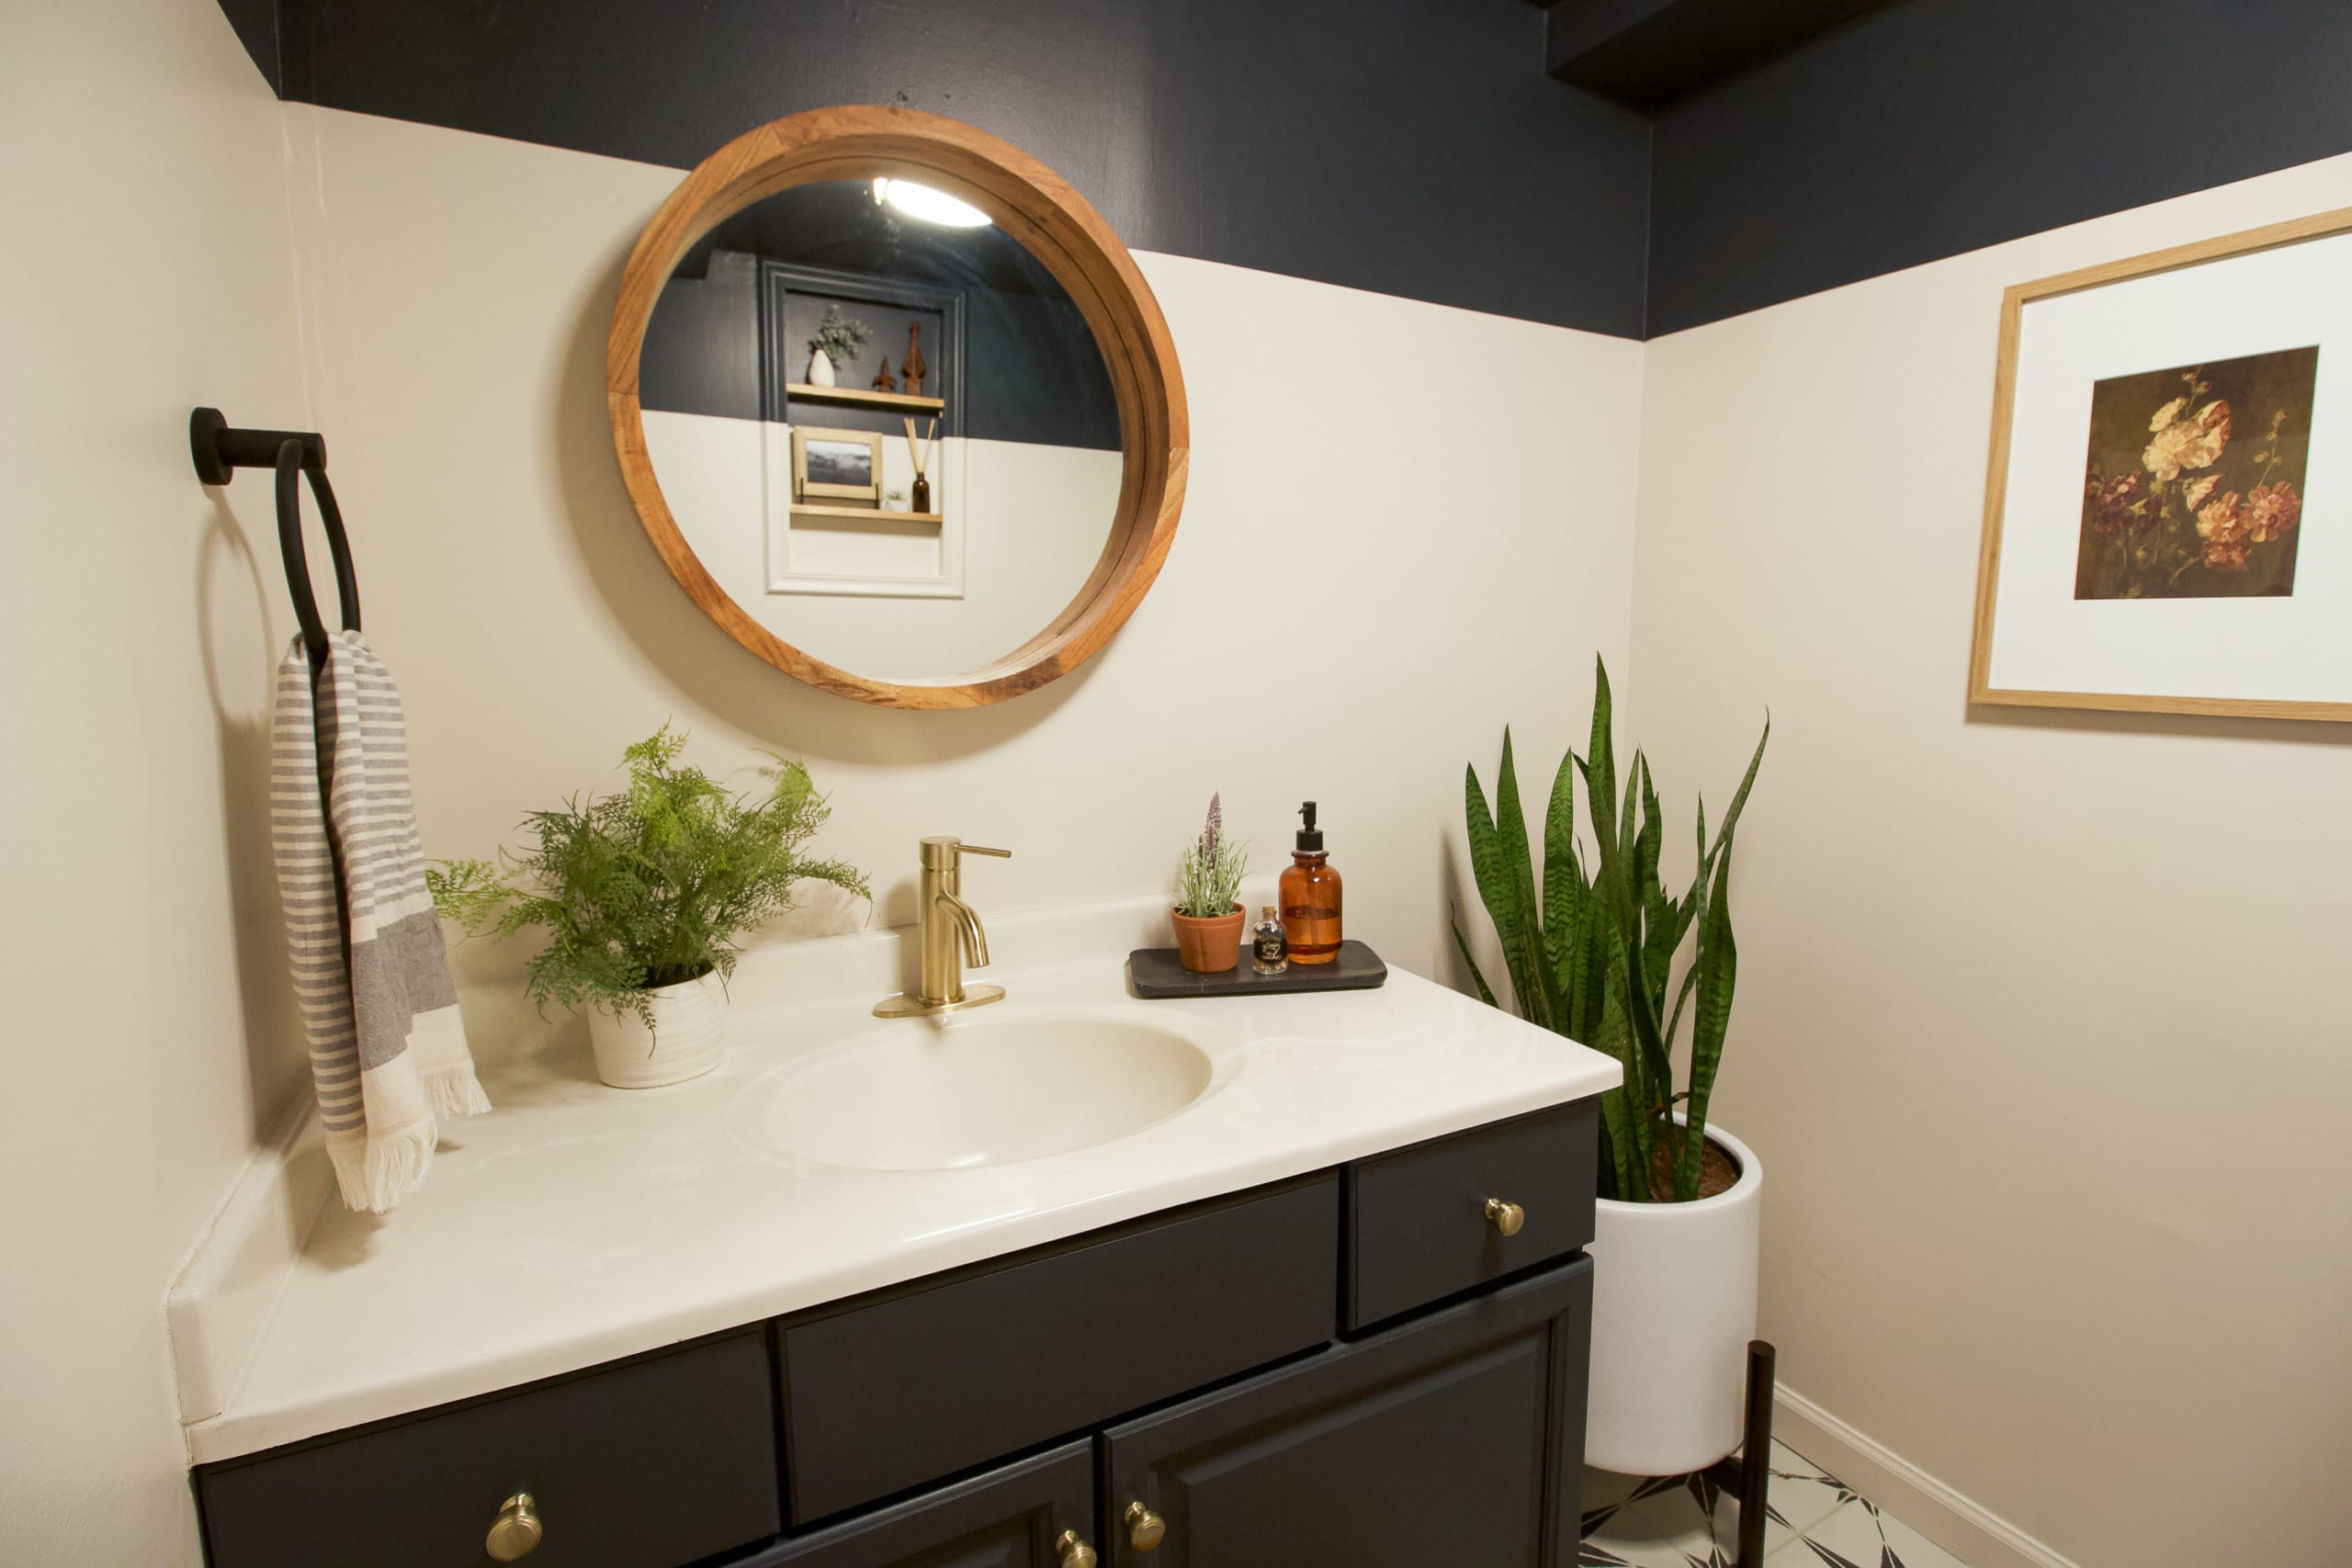 Our new basement bathroom makeover